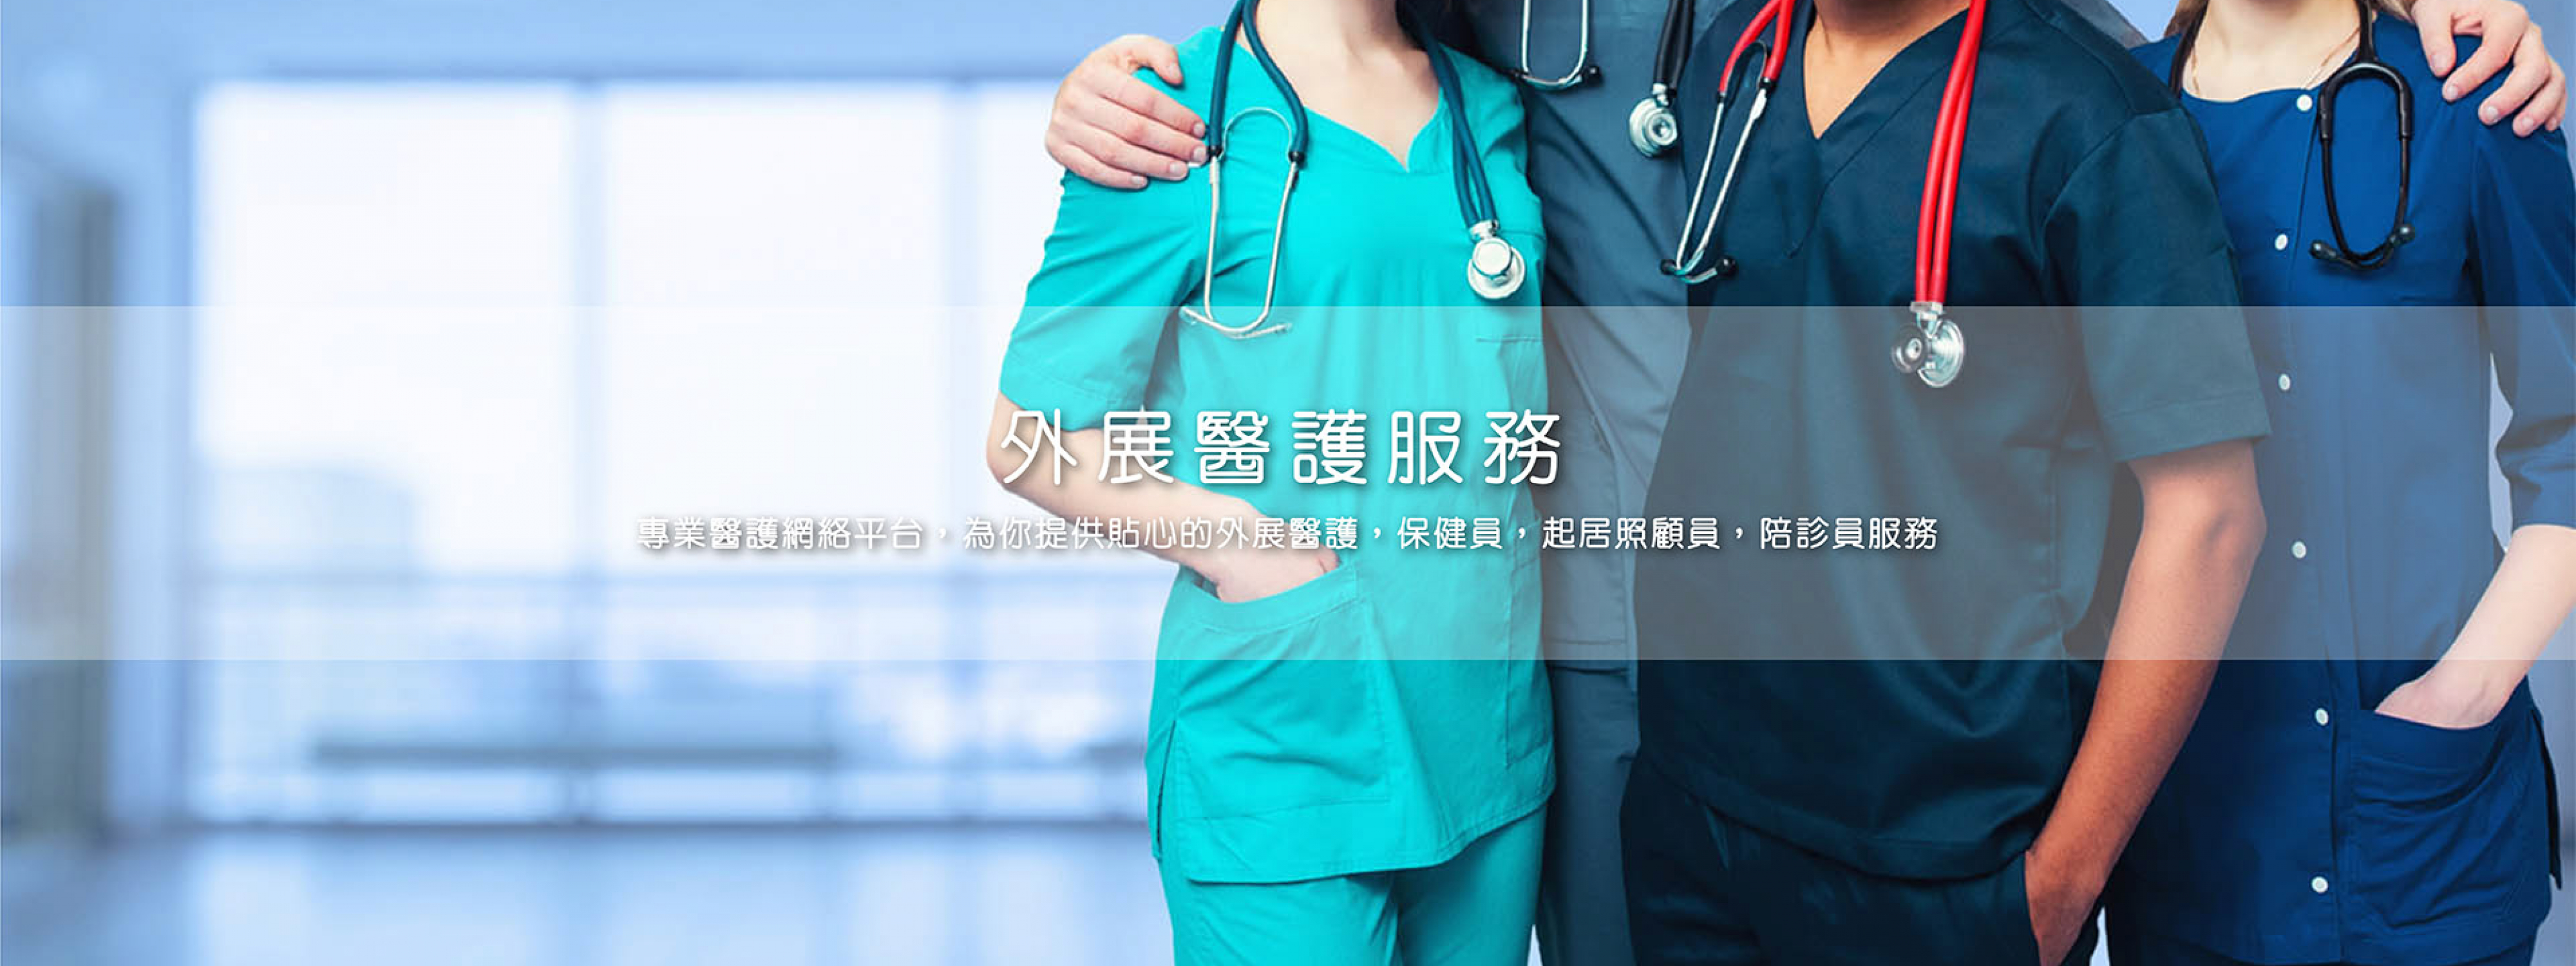 Homepage top banner(塗層)1920×750